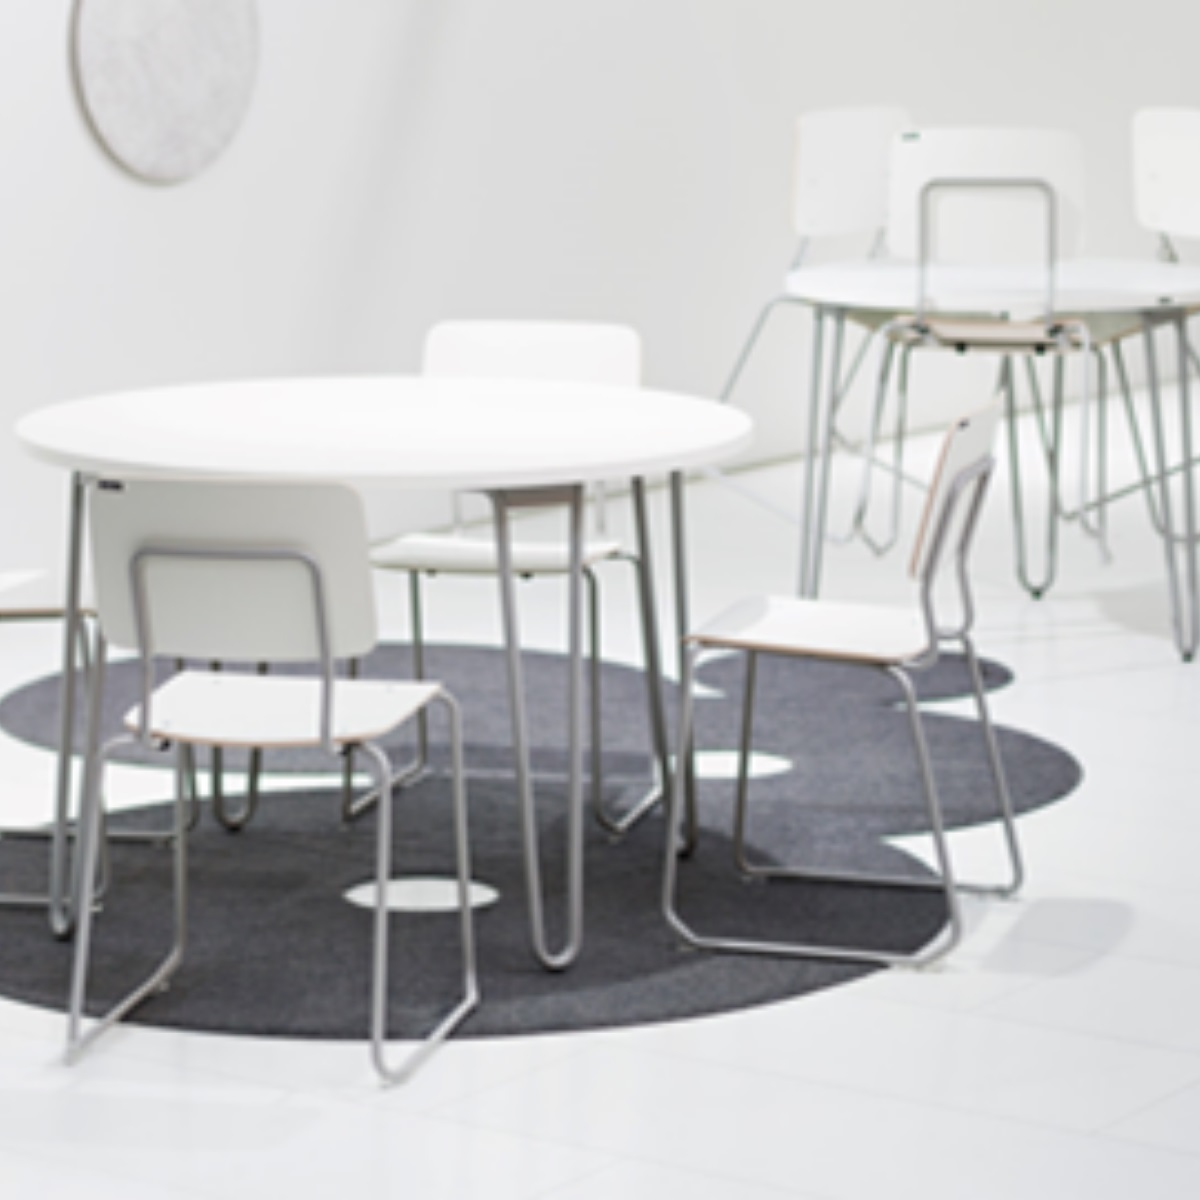 A round table and 4 chairs in a canteen setting. This indoor furniture is anti microbial